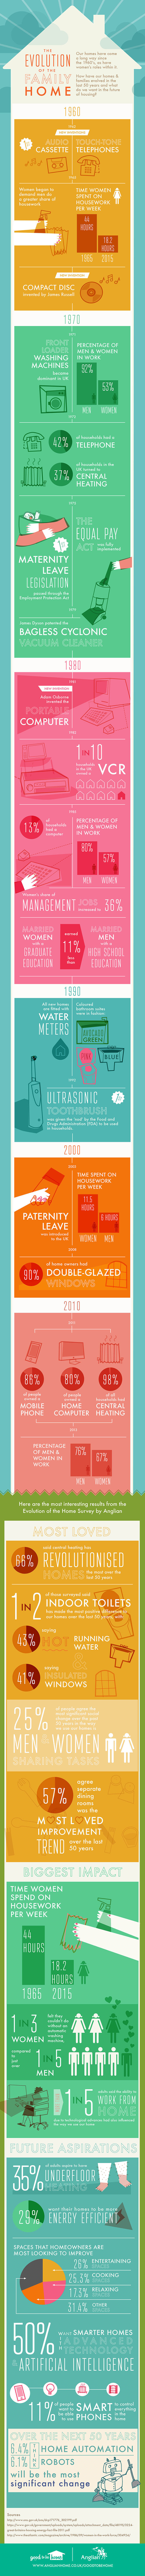 The Evolution Of The Family Home, an infographic from Good to be Home.